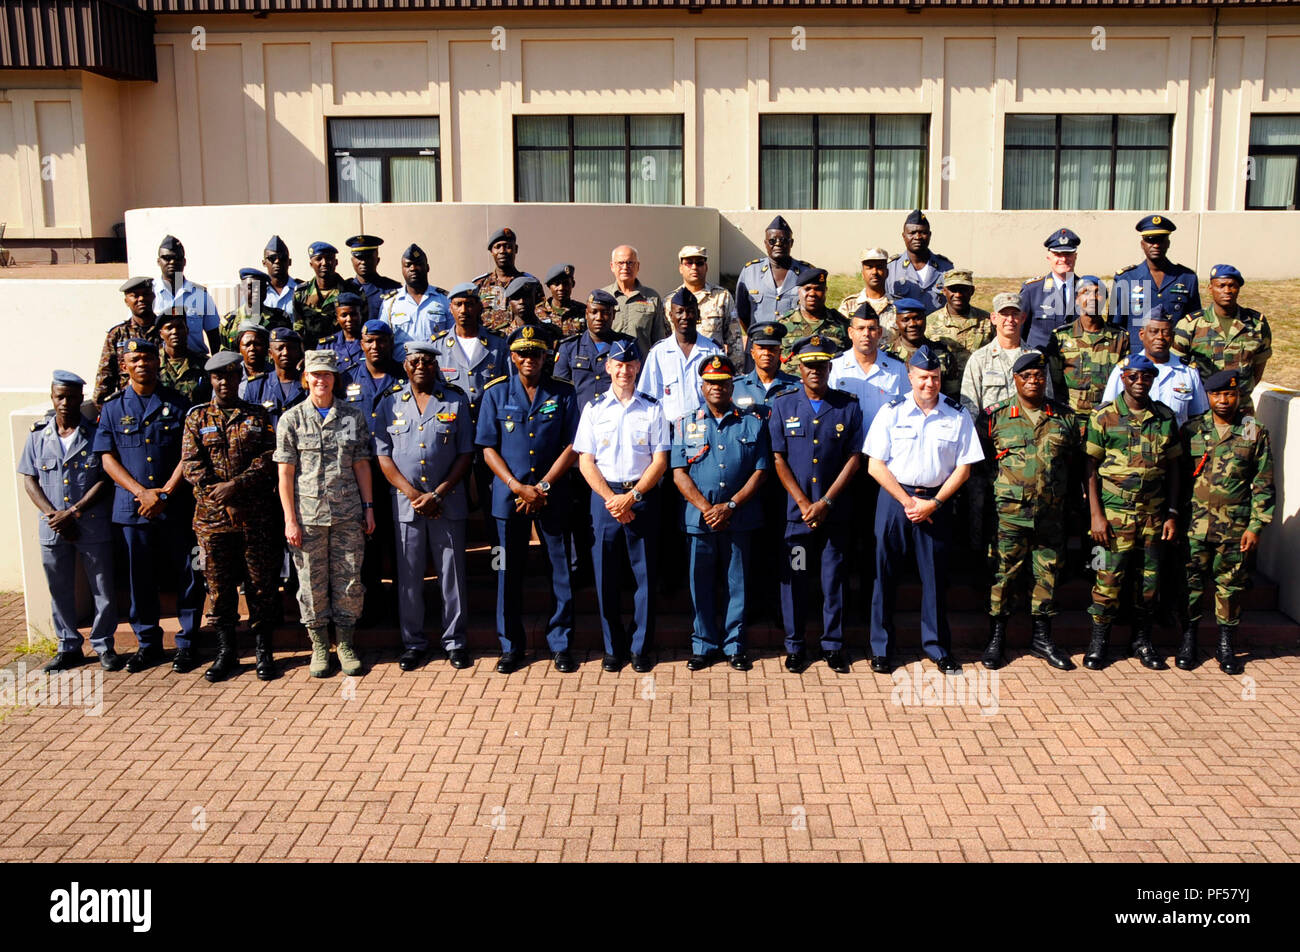 Participants from seven different African partner nations and U.S. Service Members, pose for a photo during African Partnership Flight, hosted by U.S. Air Forces Africa and co-hosted by Mauritania and Senegal at Ramstein Air Base, Germany, Aug. 9, 2018. The APF program is Air Forces in Africa's premier security cooperation program with African partner nations to improve professional military aviation knowledge and skills. (U.S. Army photo by Spc. Craig Jensen) - Stock Image